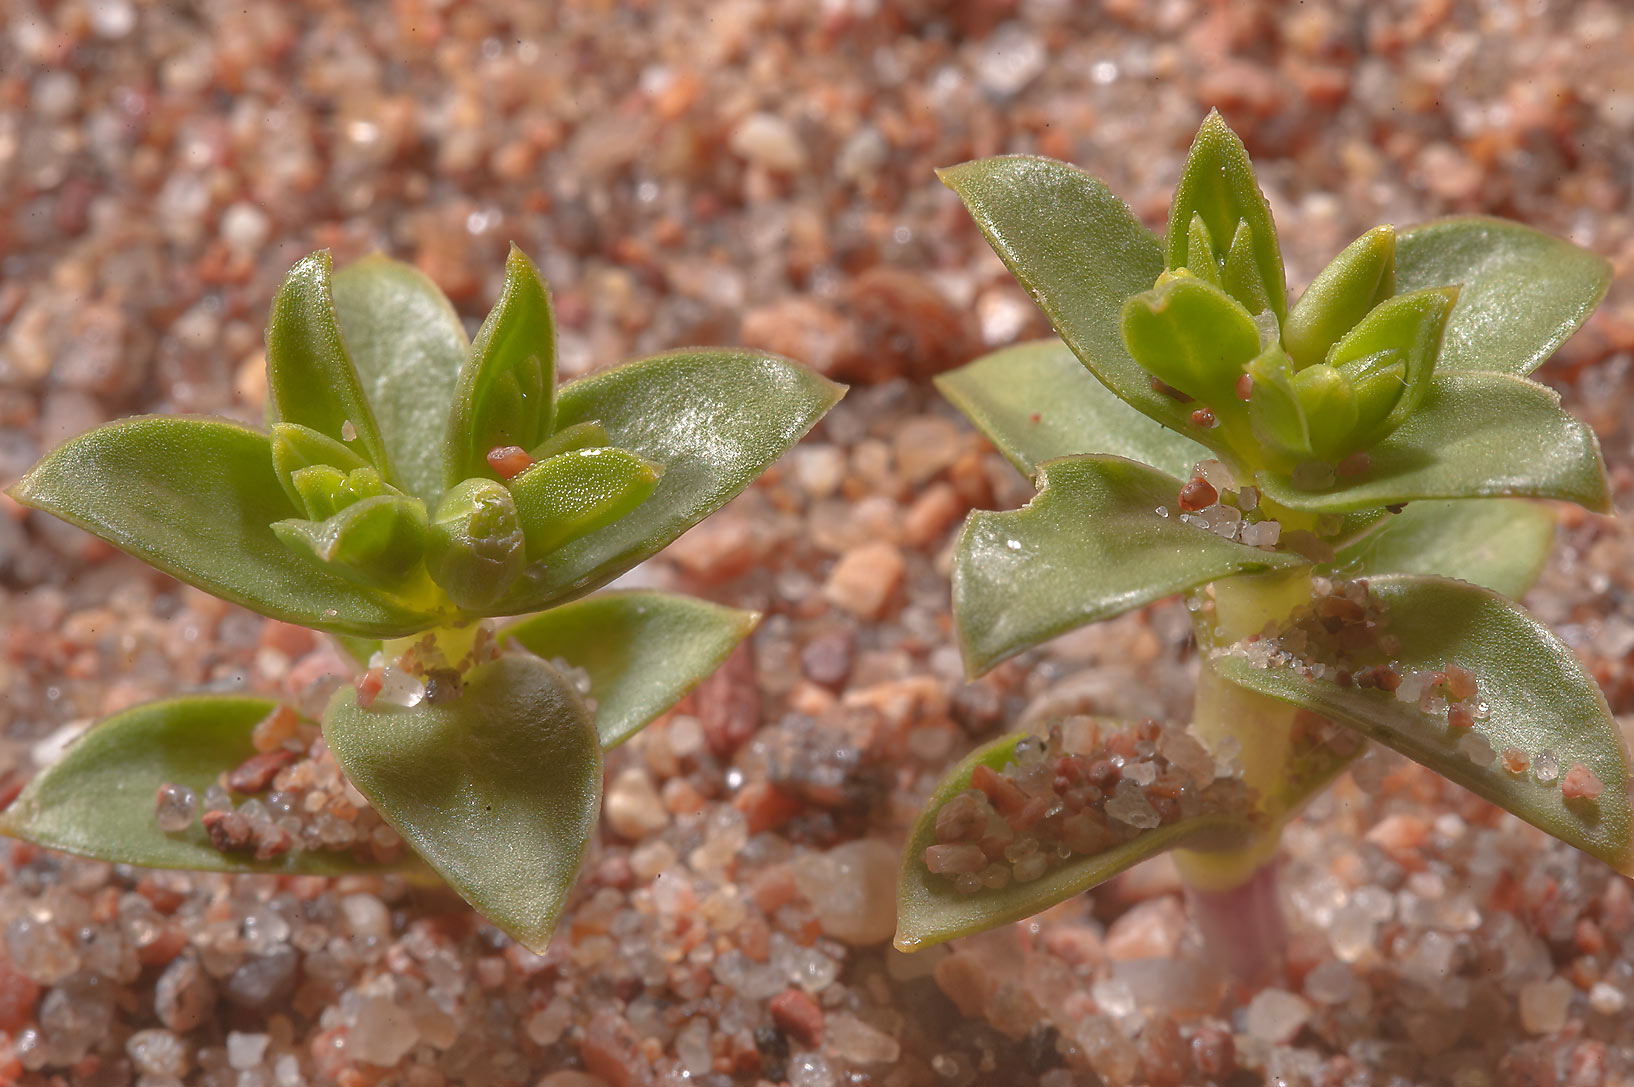 Seabeach sandwort (Honckenya peploides) in sand...west from St.Petersburg, Russia